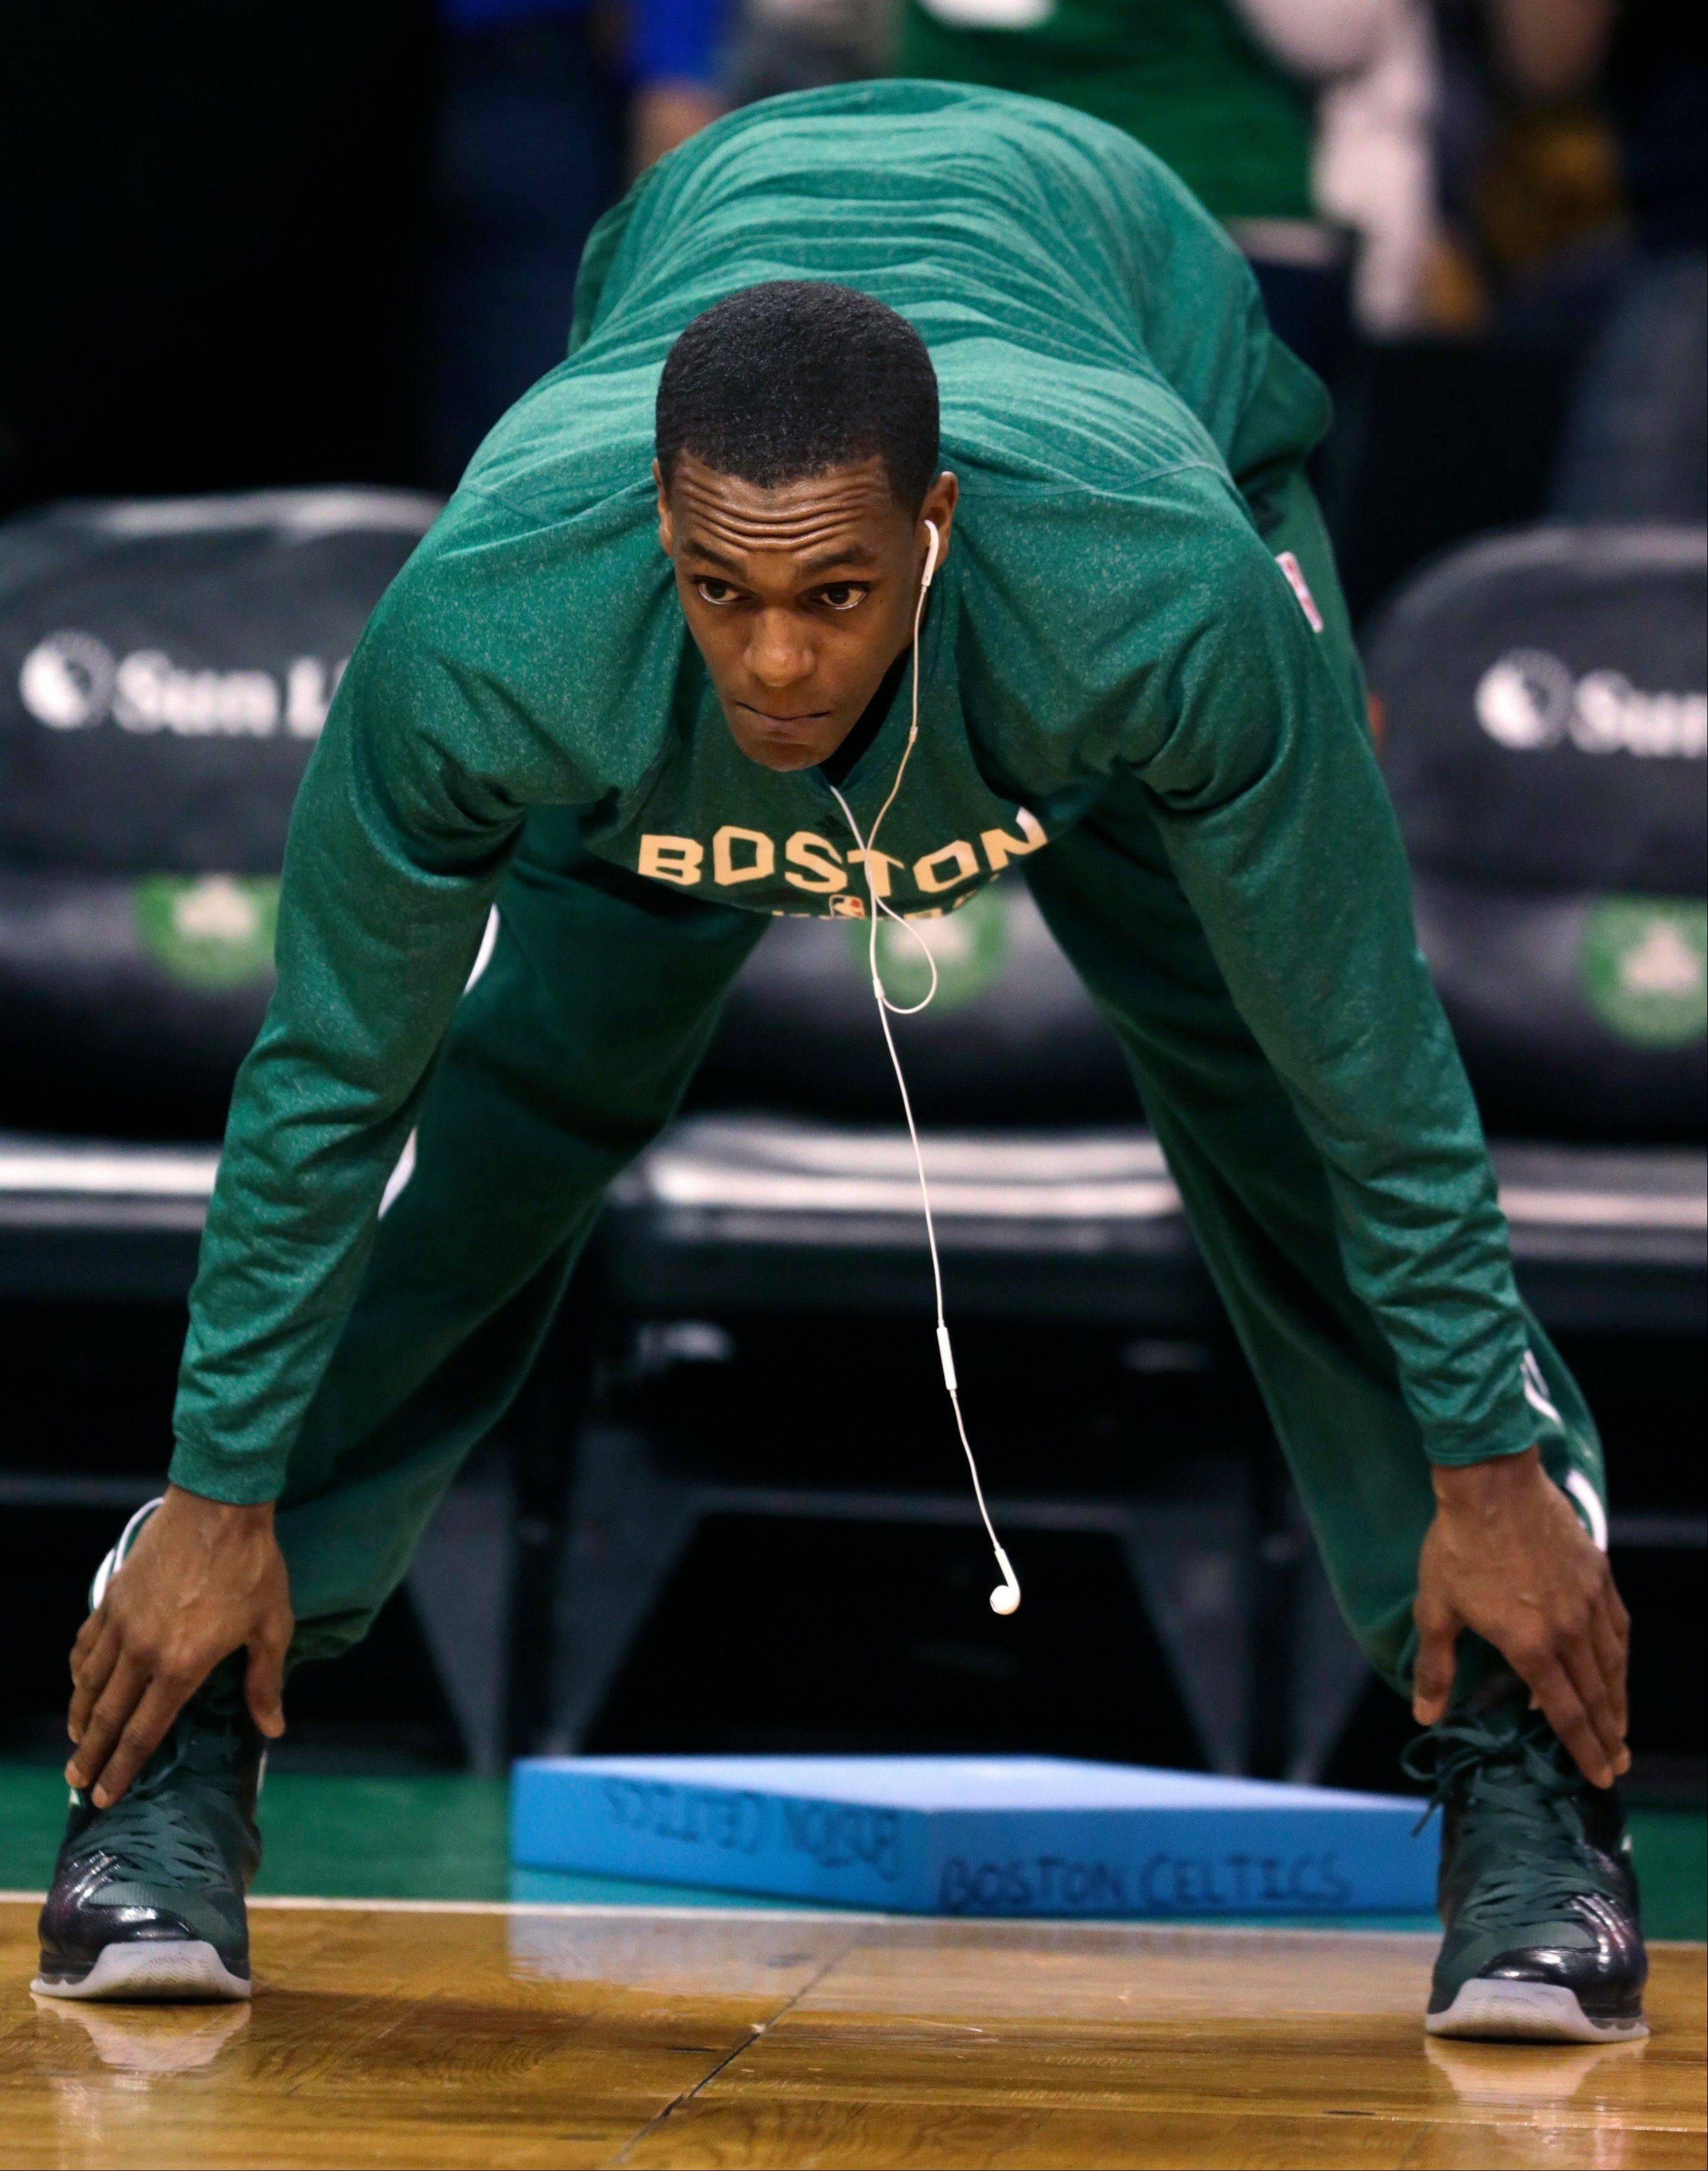 Boston Celtics guard Rajon Rondo stretches prior to an NBA basketball game against the Toronto Raptors, in Boston, Wednesday, Jan. 15, 2014. Rondo took a step toward returning to action on Wednesday, working out with members of Boston's NBA Development League team at the Celtics' practice facility earlier in the day.